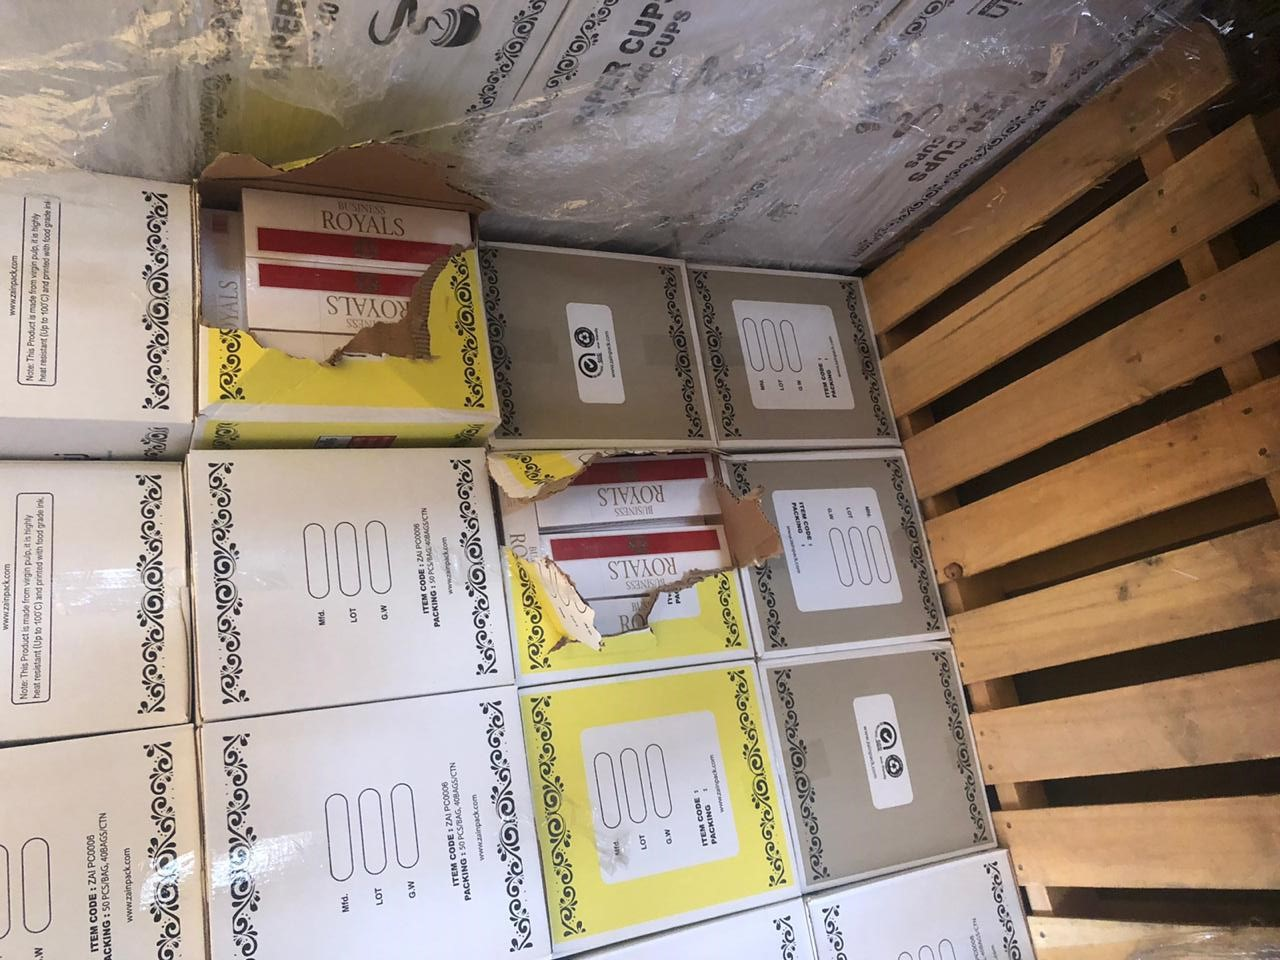 Attempt to smuggle cigarettes into Oman foiled